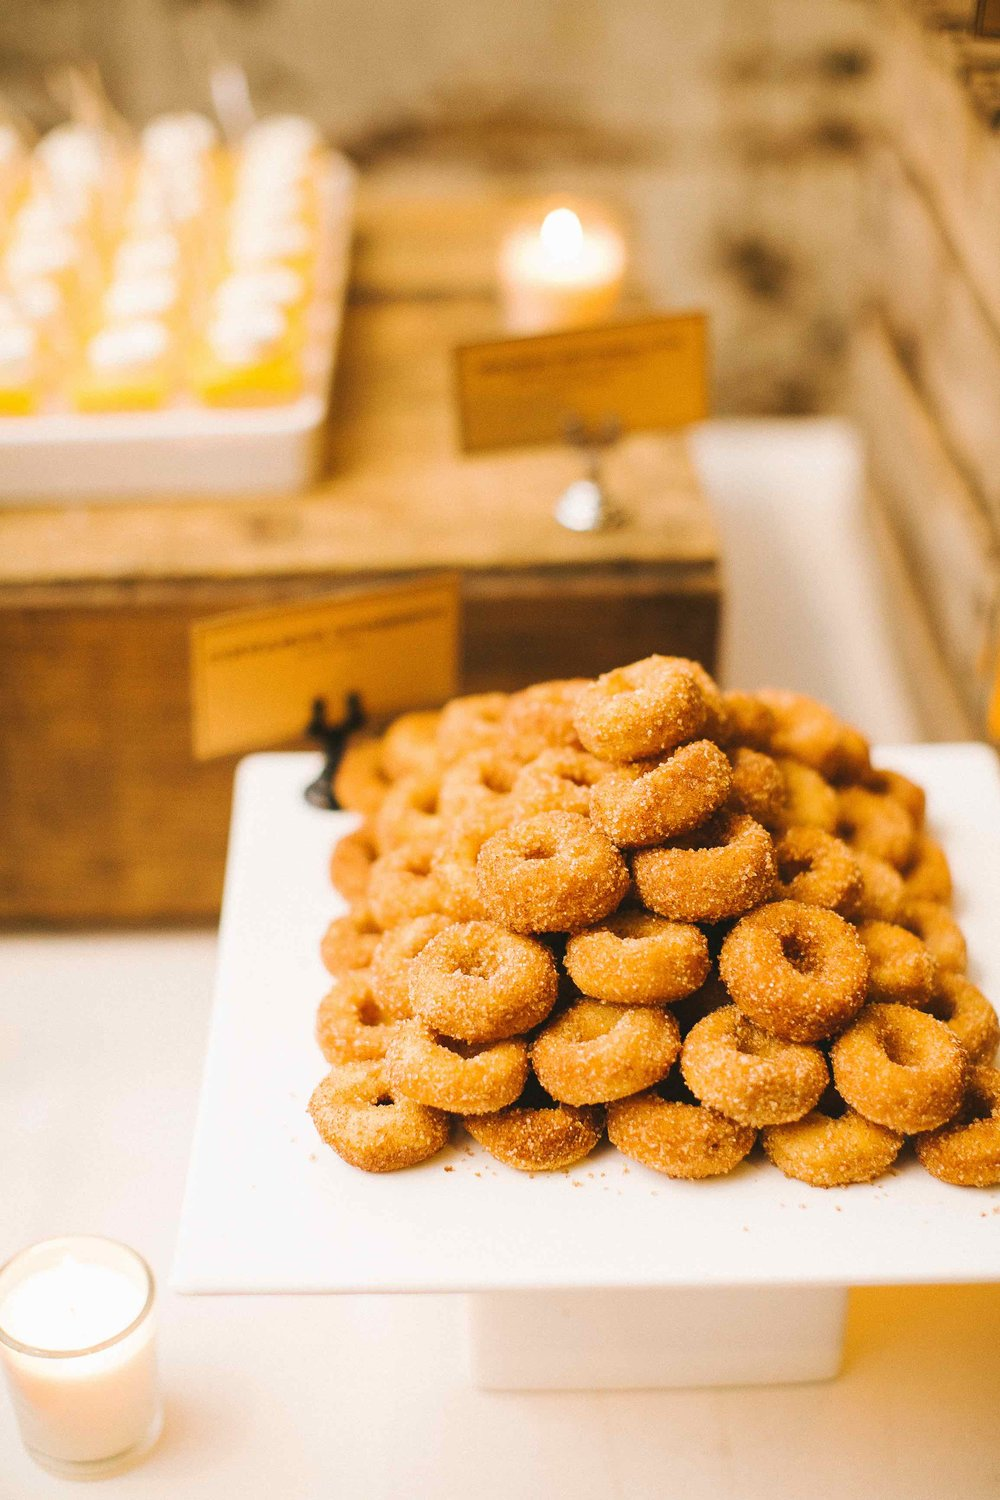 Donut Station by Dish Food & Events Catering